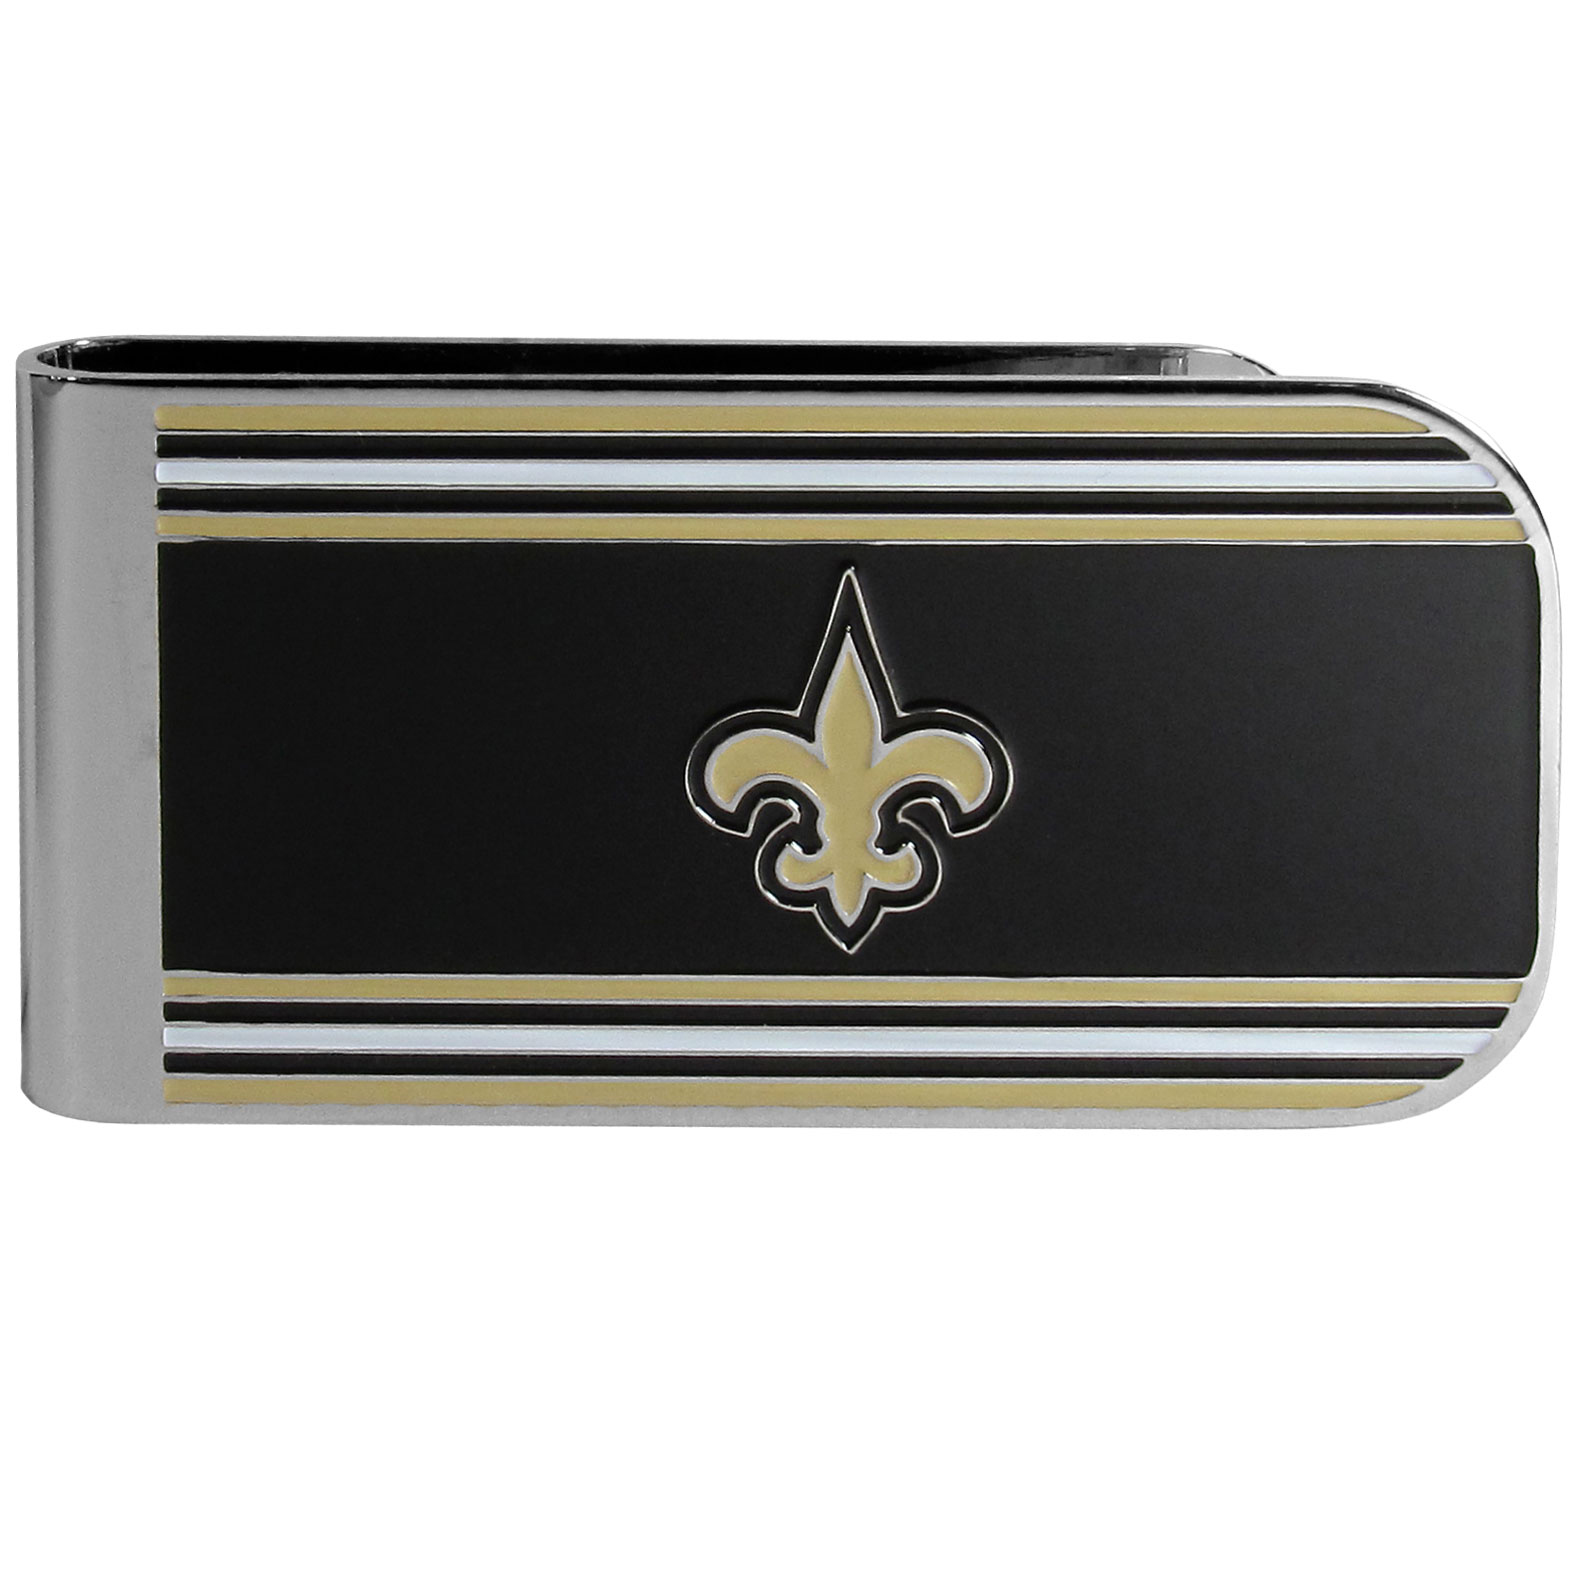 New Orleans Saints MVP Money Clip - Our MVP money clip is made of high quality steel with a chrome overlay and enameled team colors and logo. The exceptional craftmanship on this piece makes it a men's fashion accessory that any fan would be proud to own. The cast detail in the New Orleans Saints logo is perfectly detailed. The clip features an inner spring to hold your cash and cards securely in place.